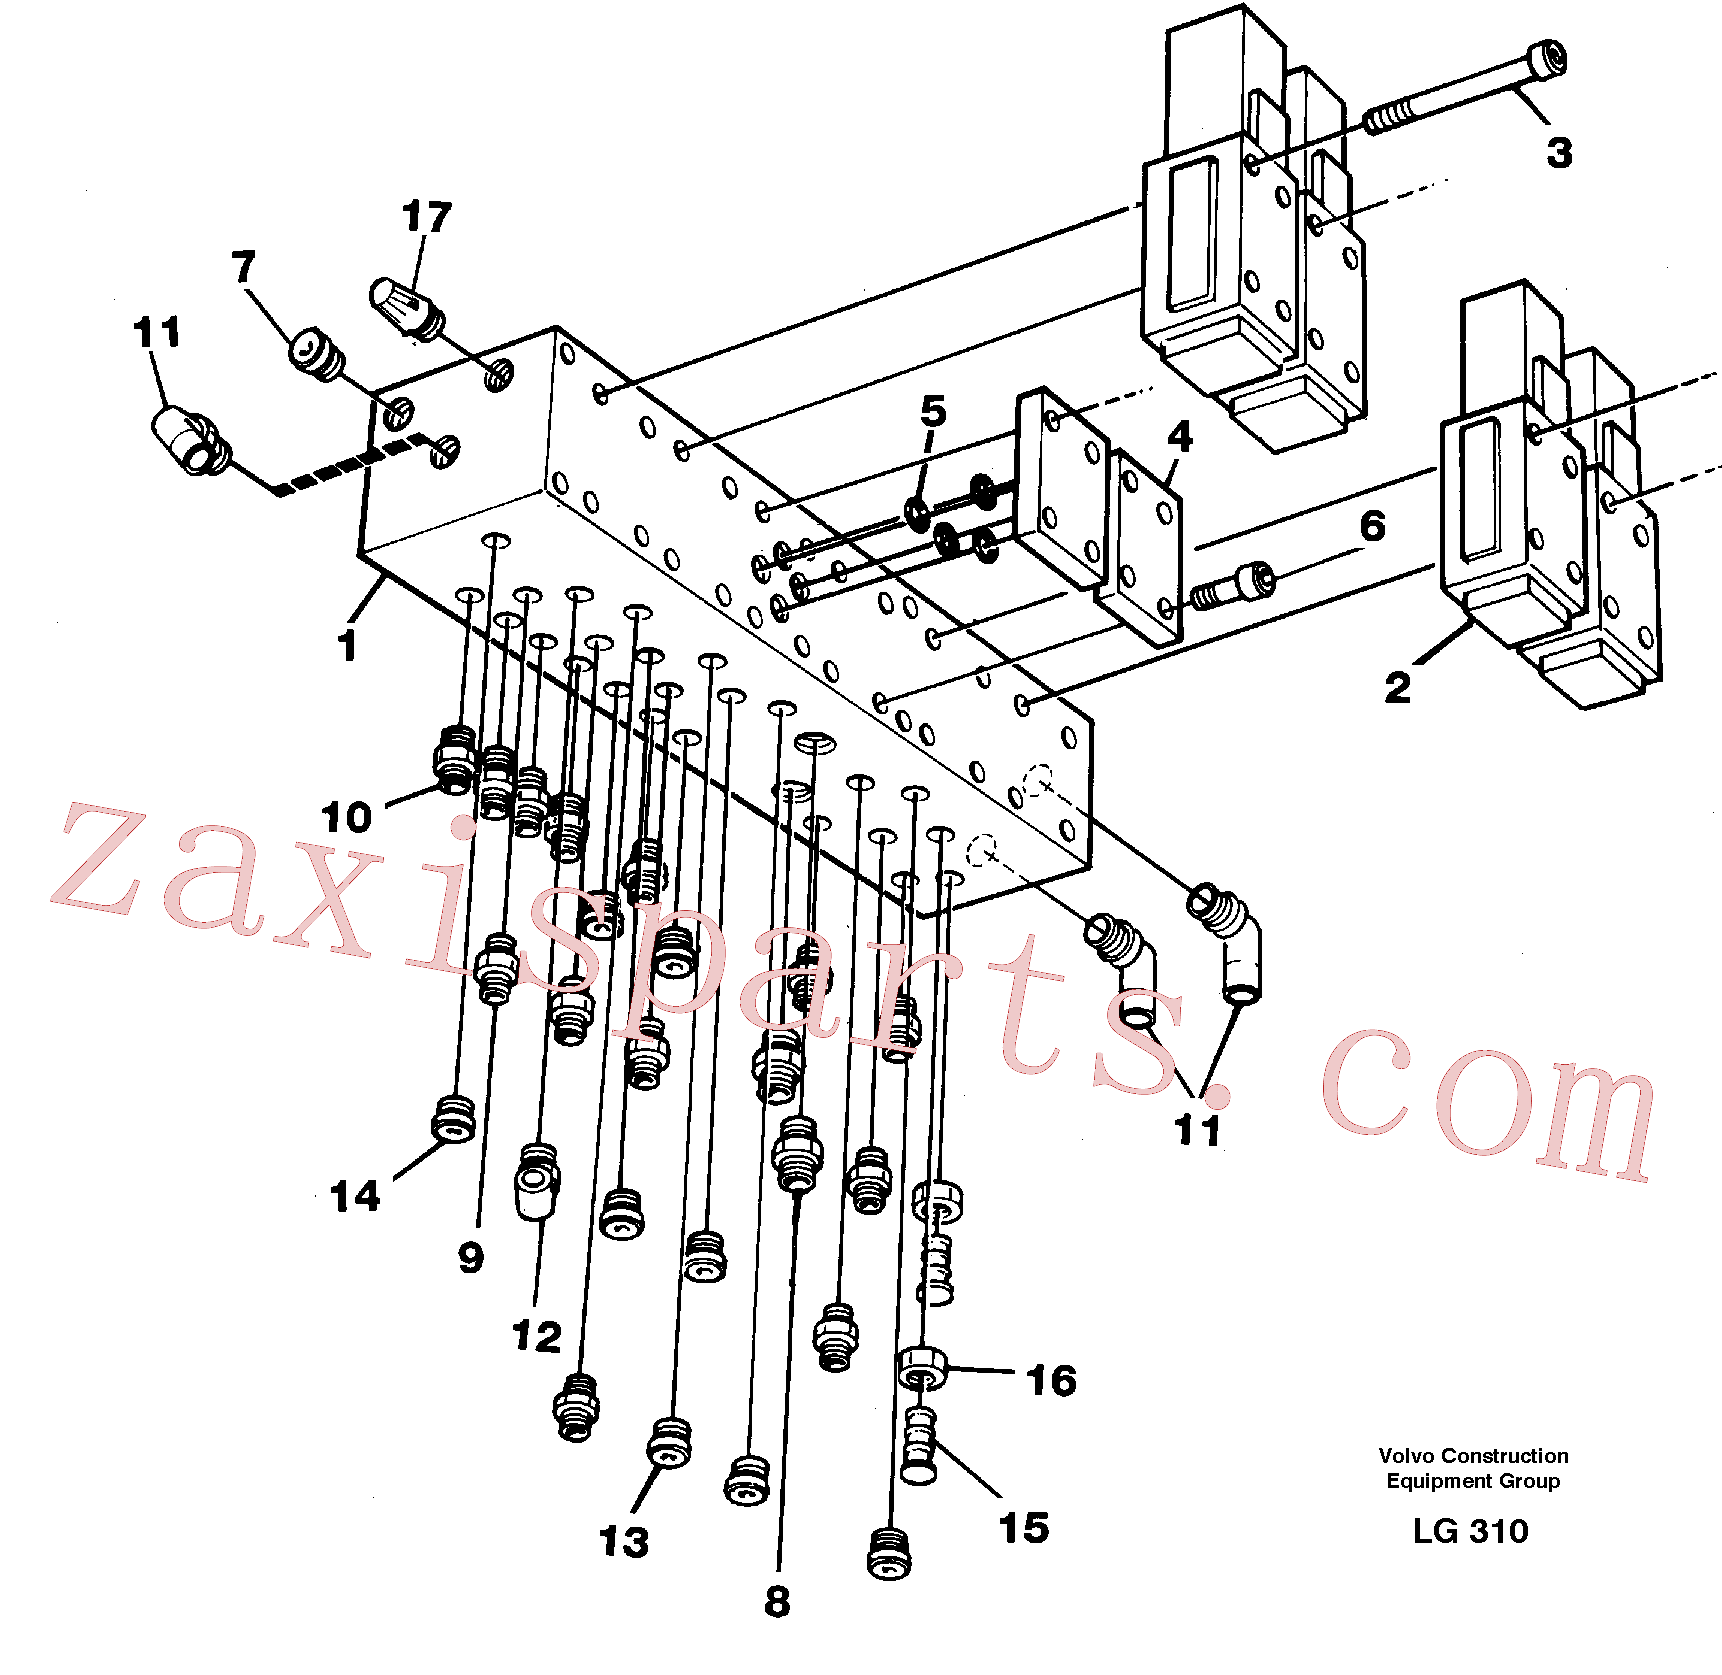 VOE14212598 for Volvo Control valve block(LG310 assembly)